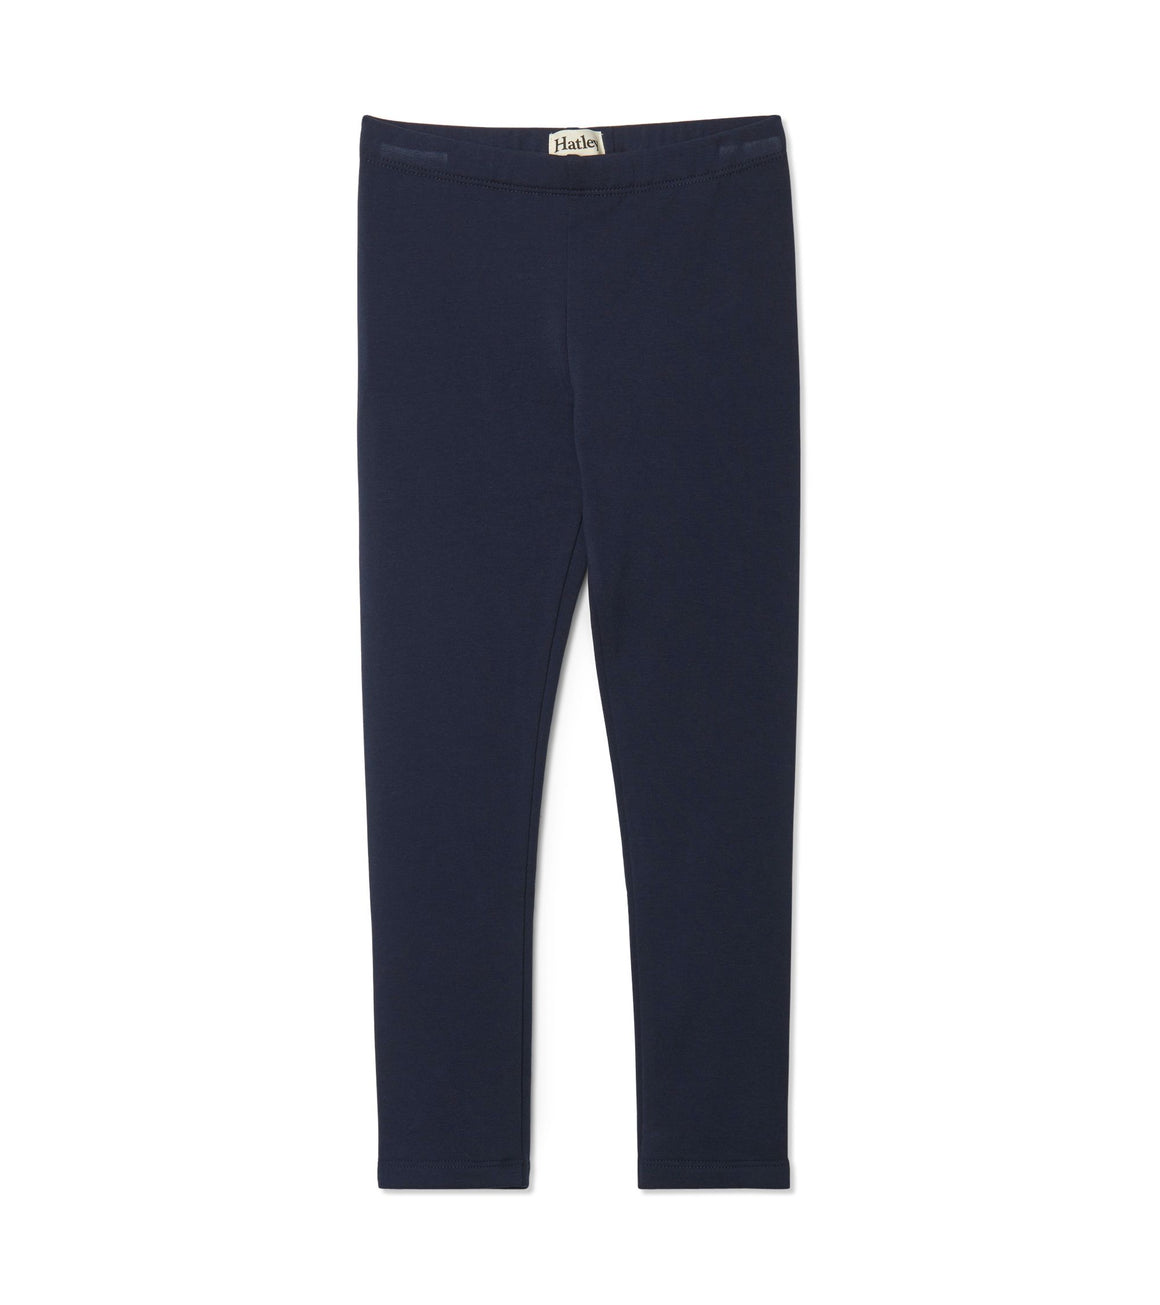 Hatley | Navy Cozy Leggings